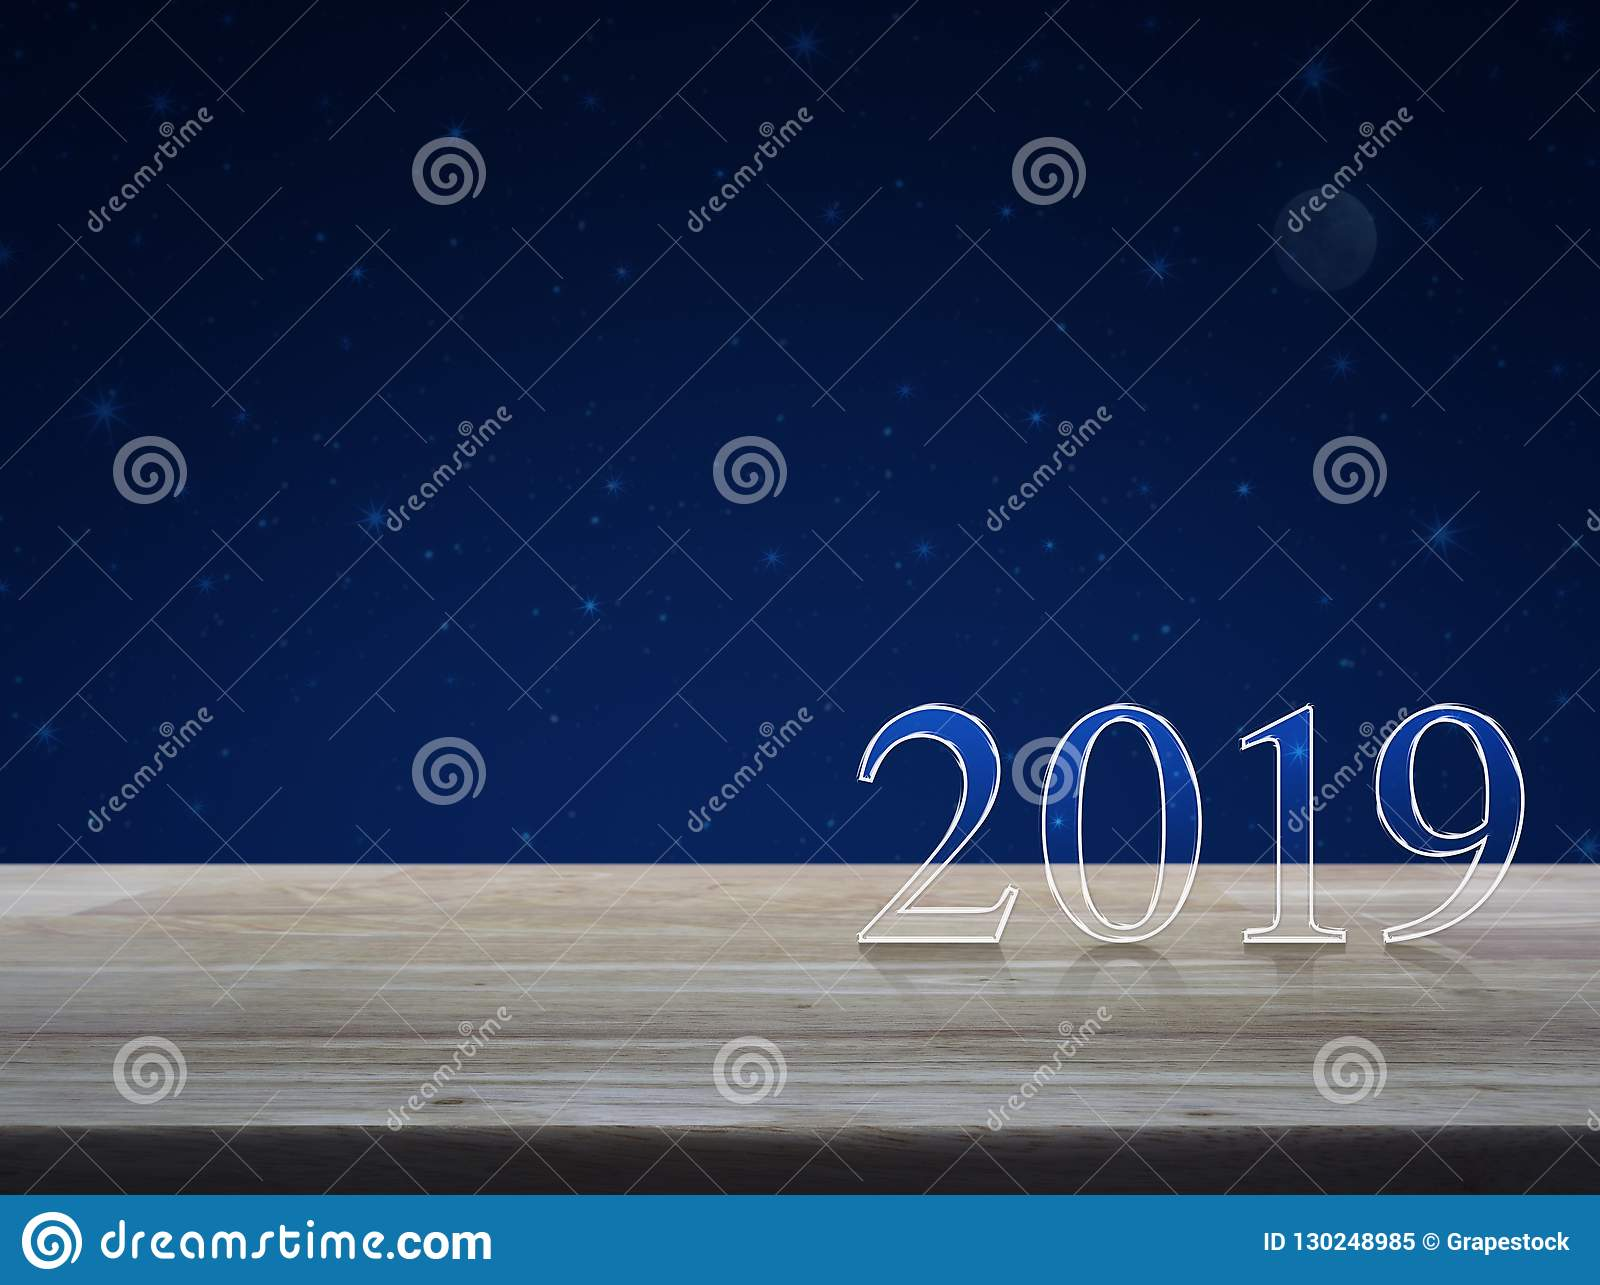 Happy new year 2019 text on wooden table